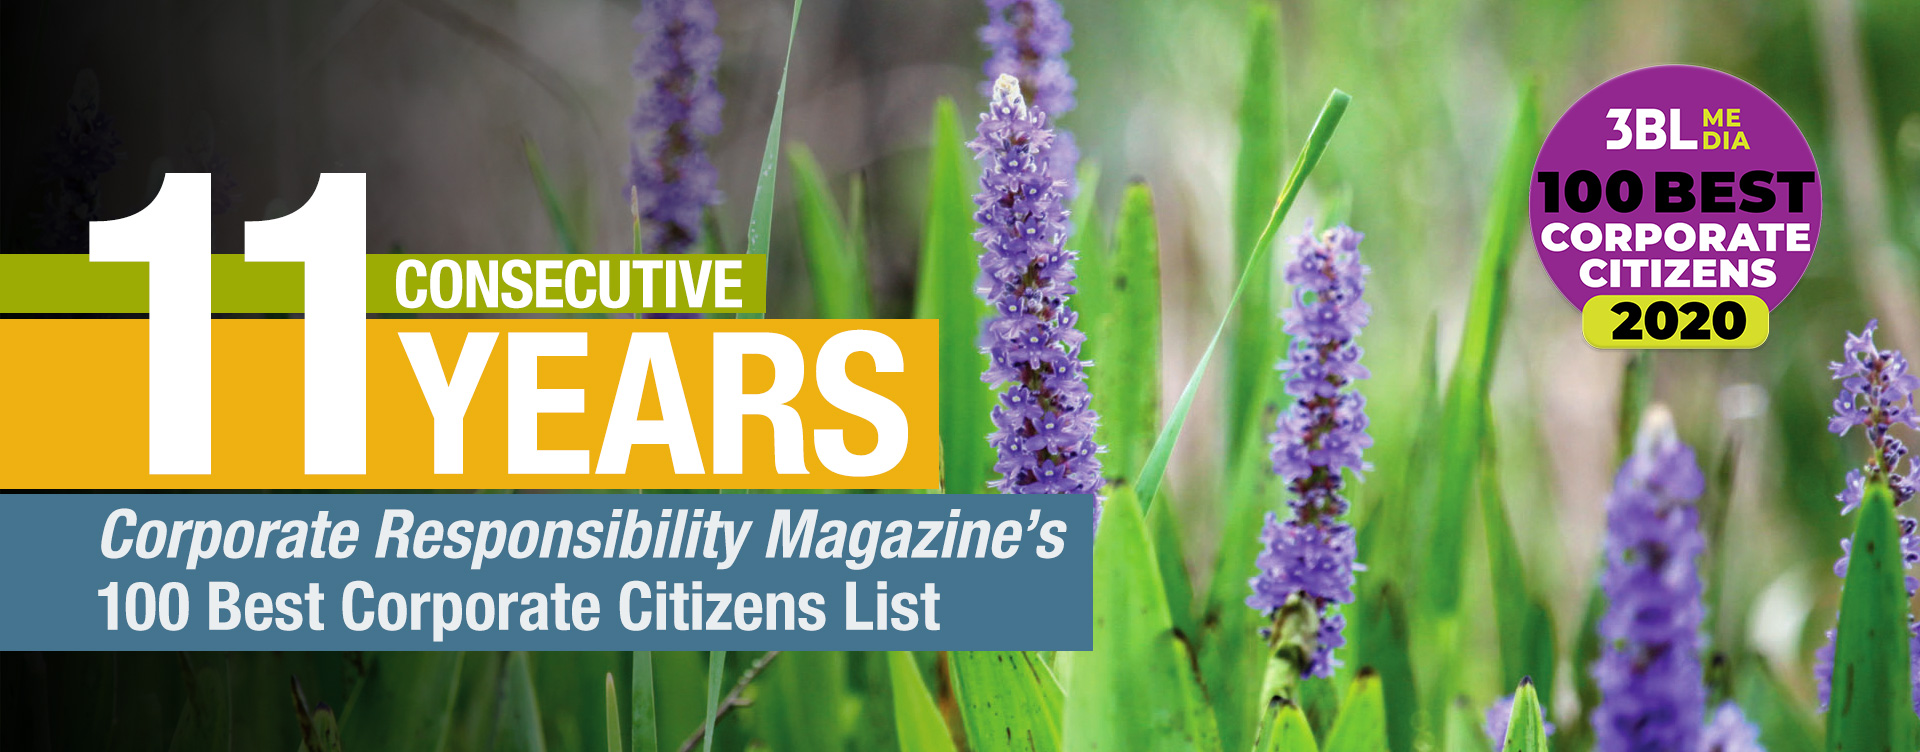 11 consecutive years on Corporate Responsibility Magazine's 100 Best Corporate Citizens List